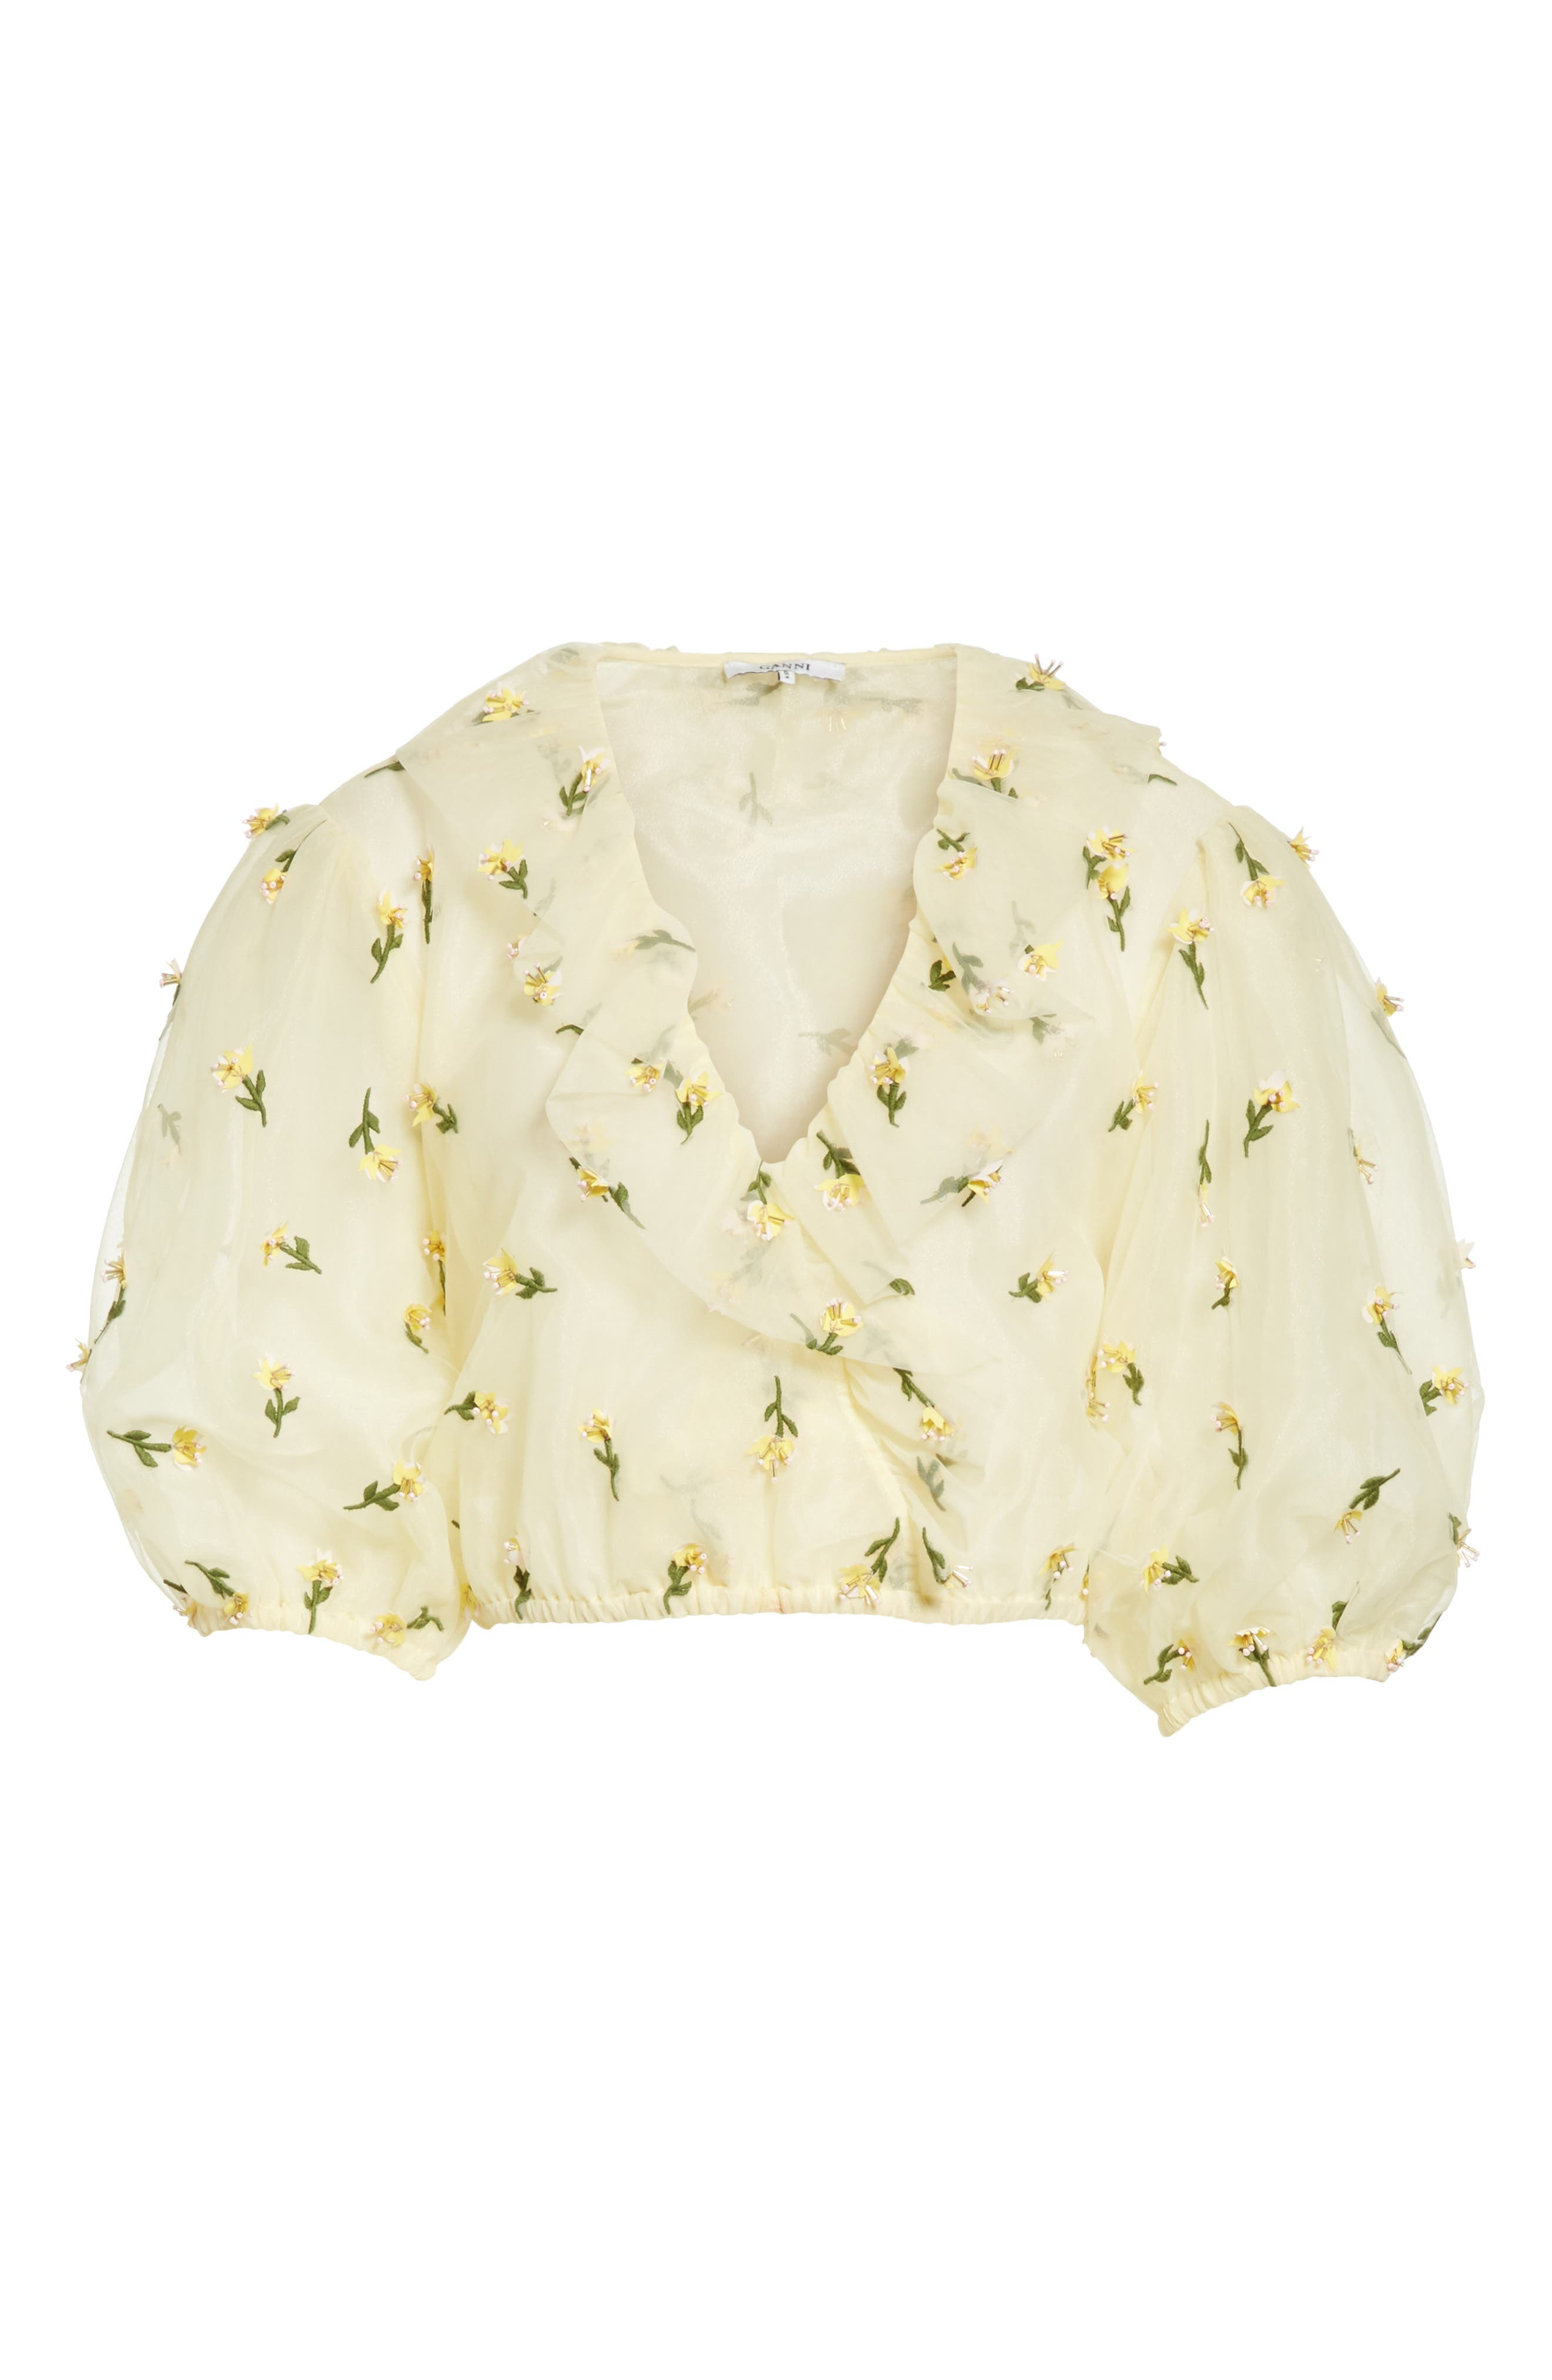 Bliss Embroidered Floral Wrap Top,                             Alternate thumbnail 6, color,                             Anise Flower